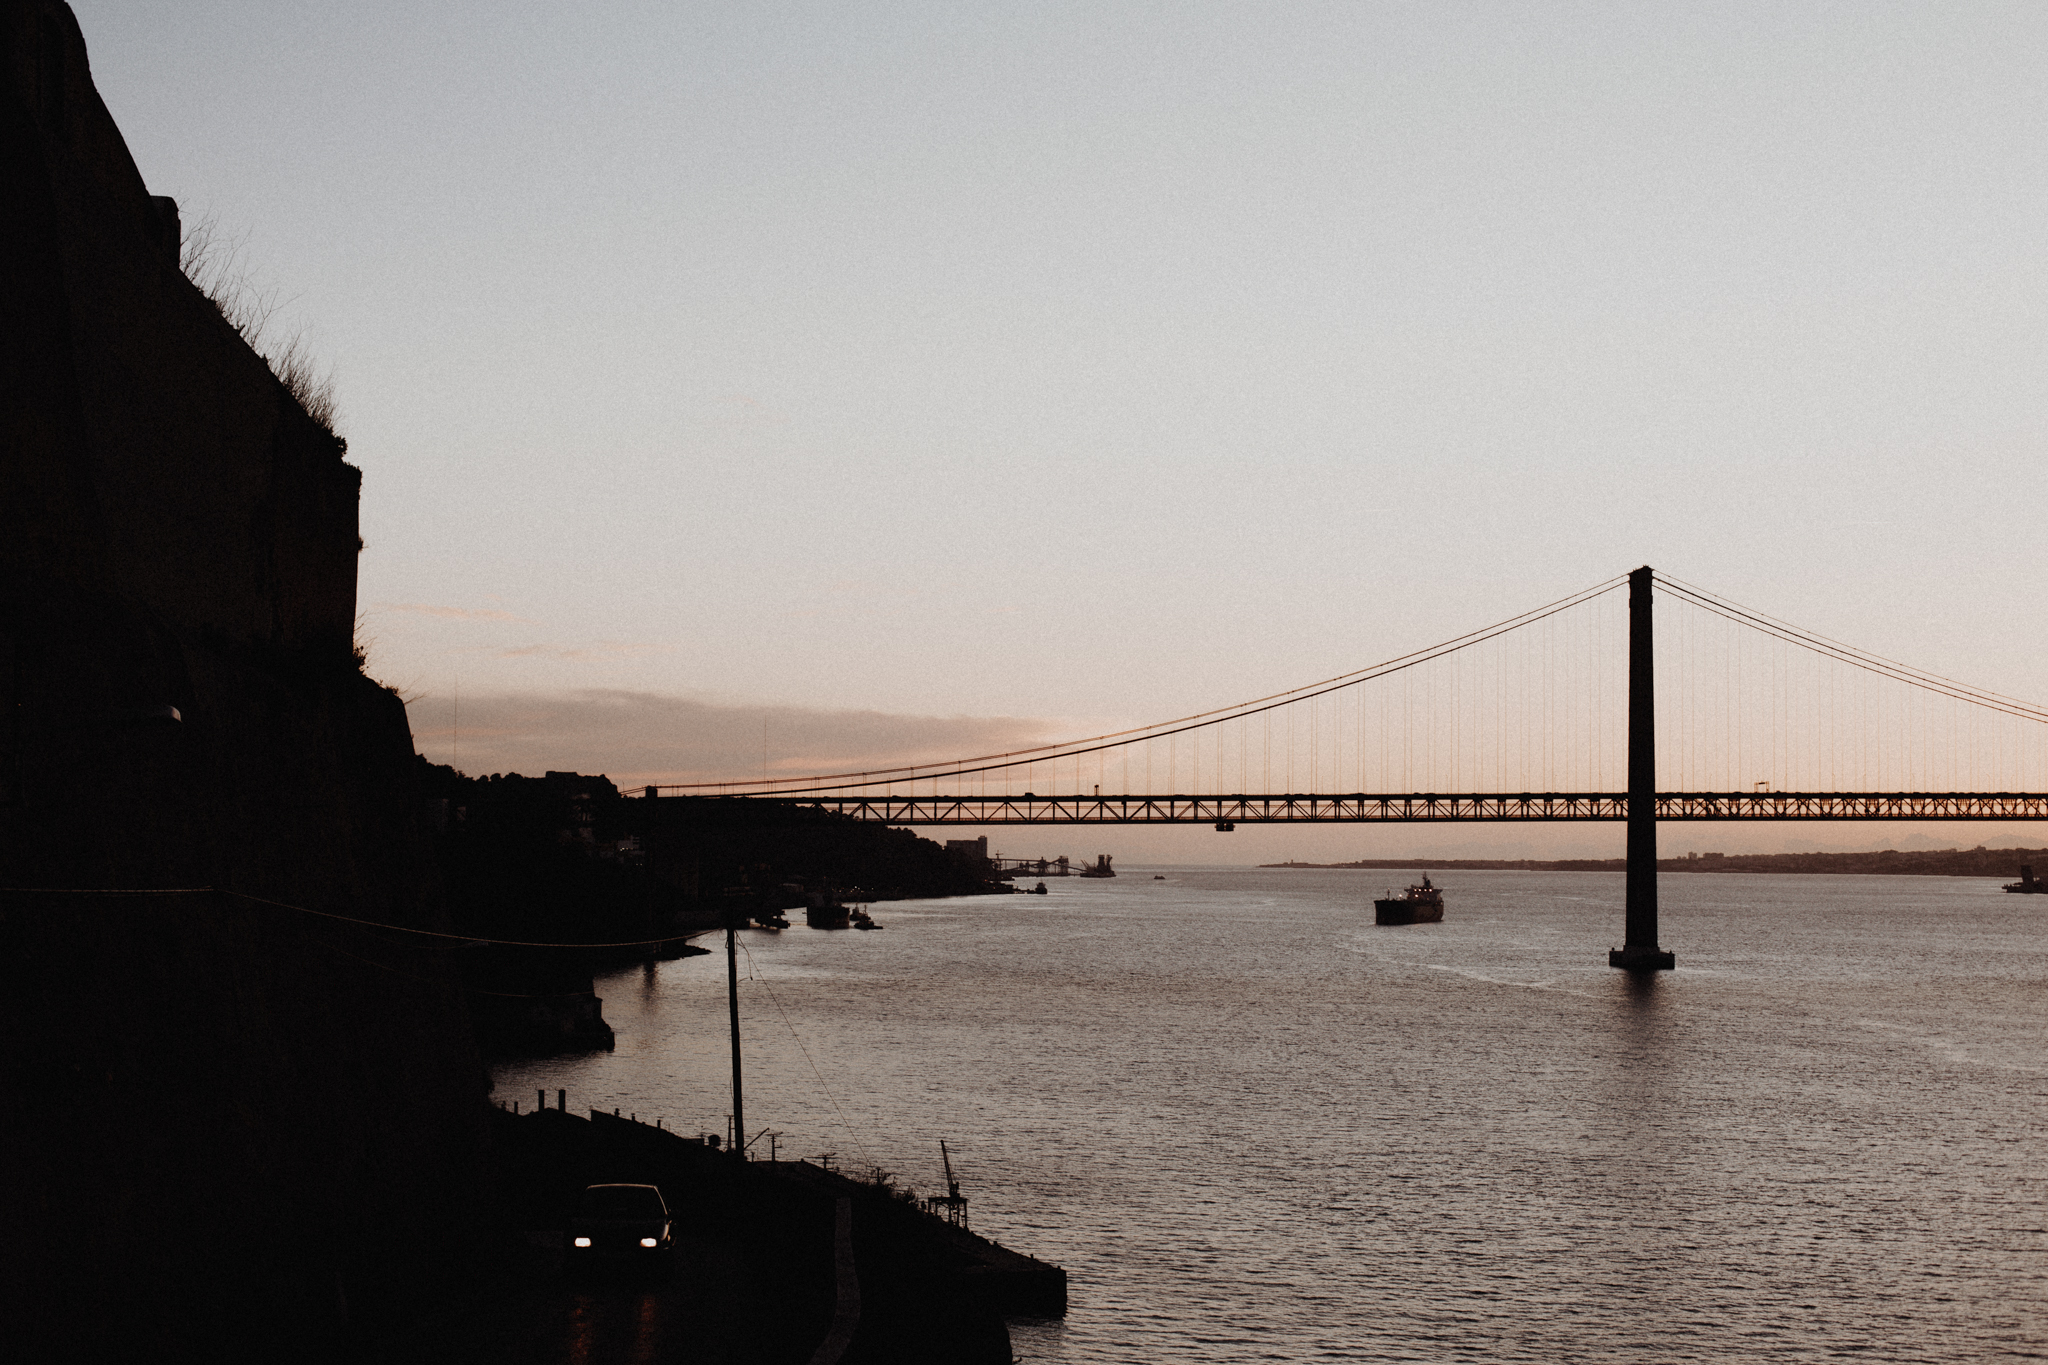 view of Ponte 25 de Abril bridge during sunset on tagus river from boca do vento